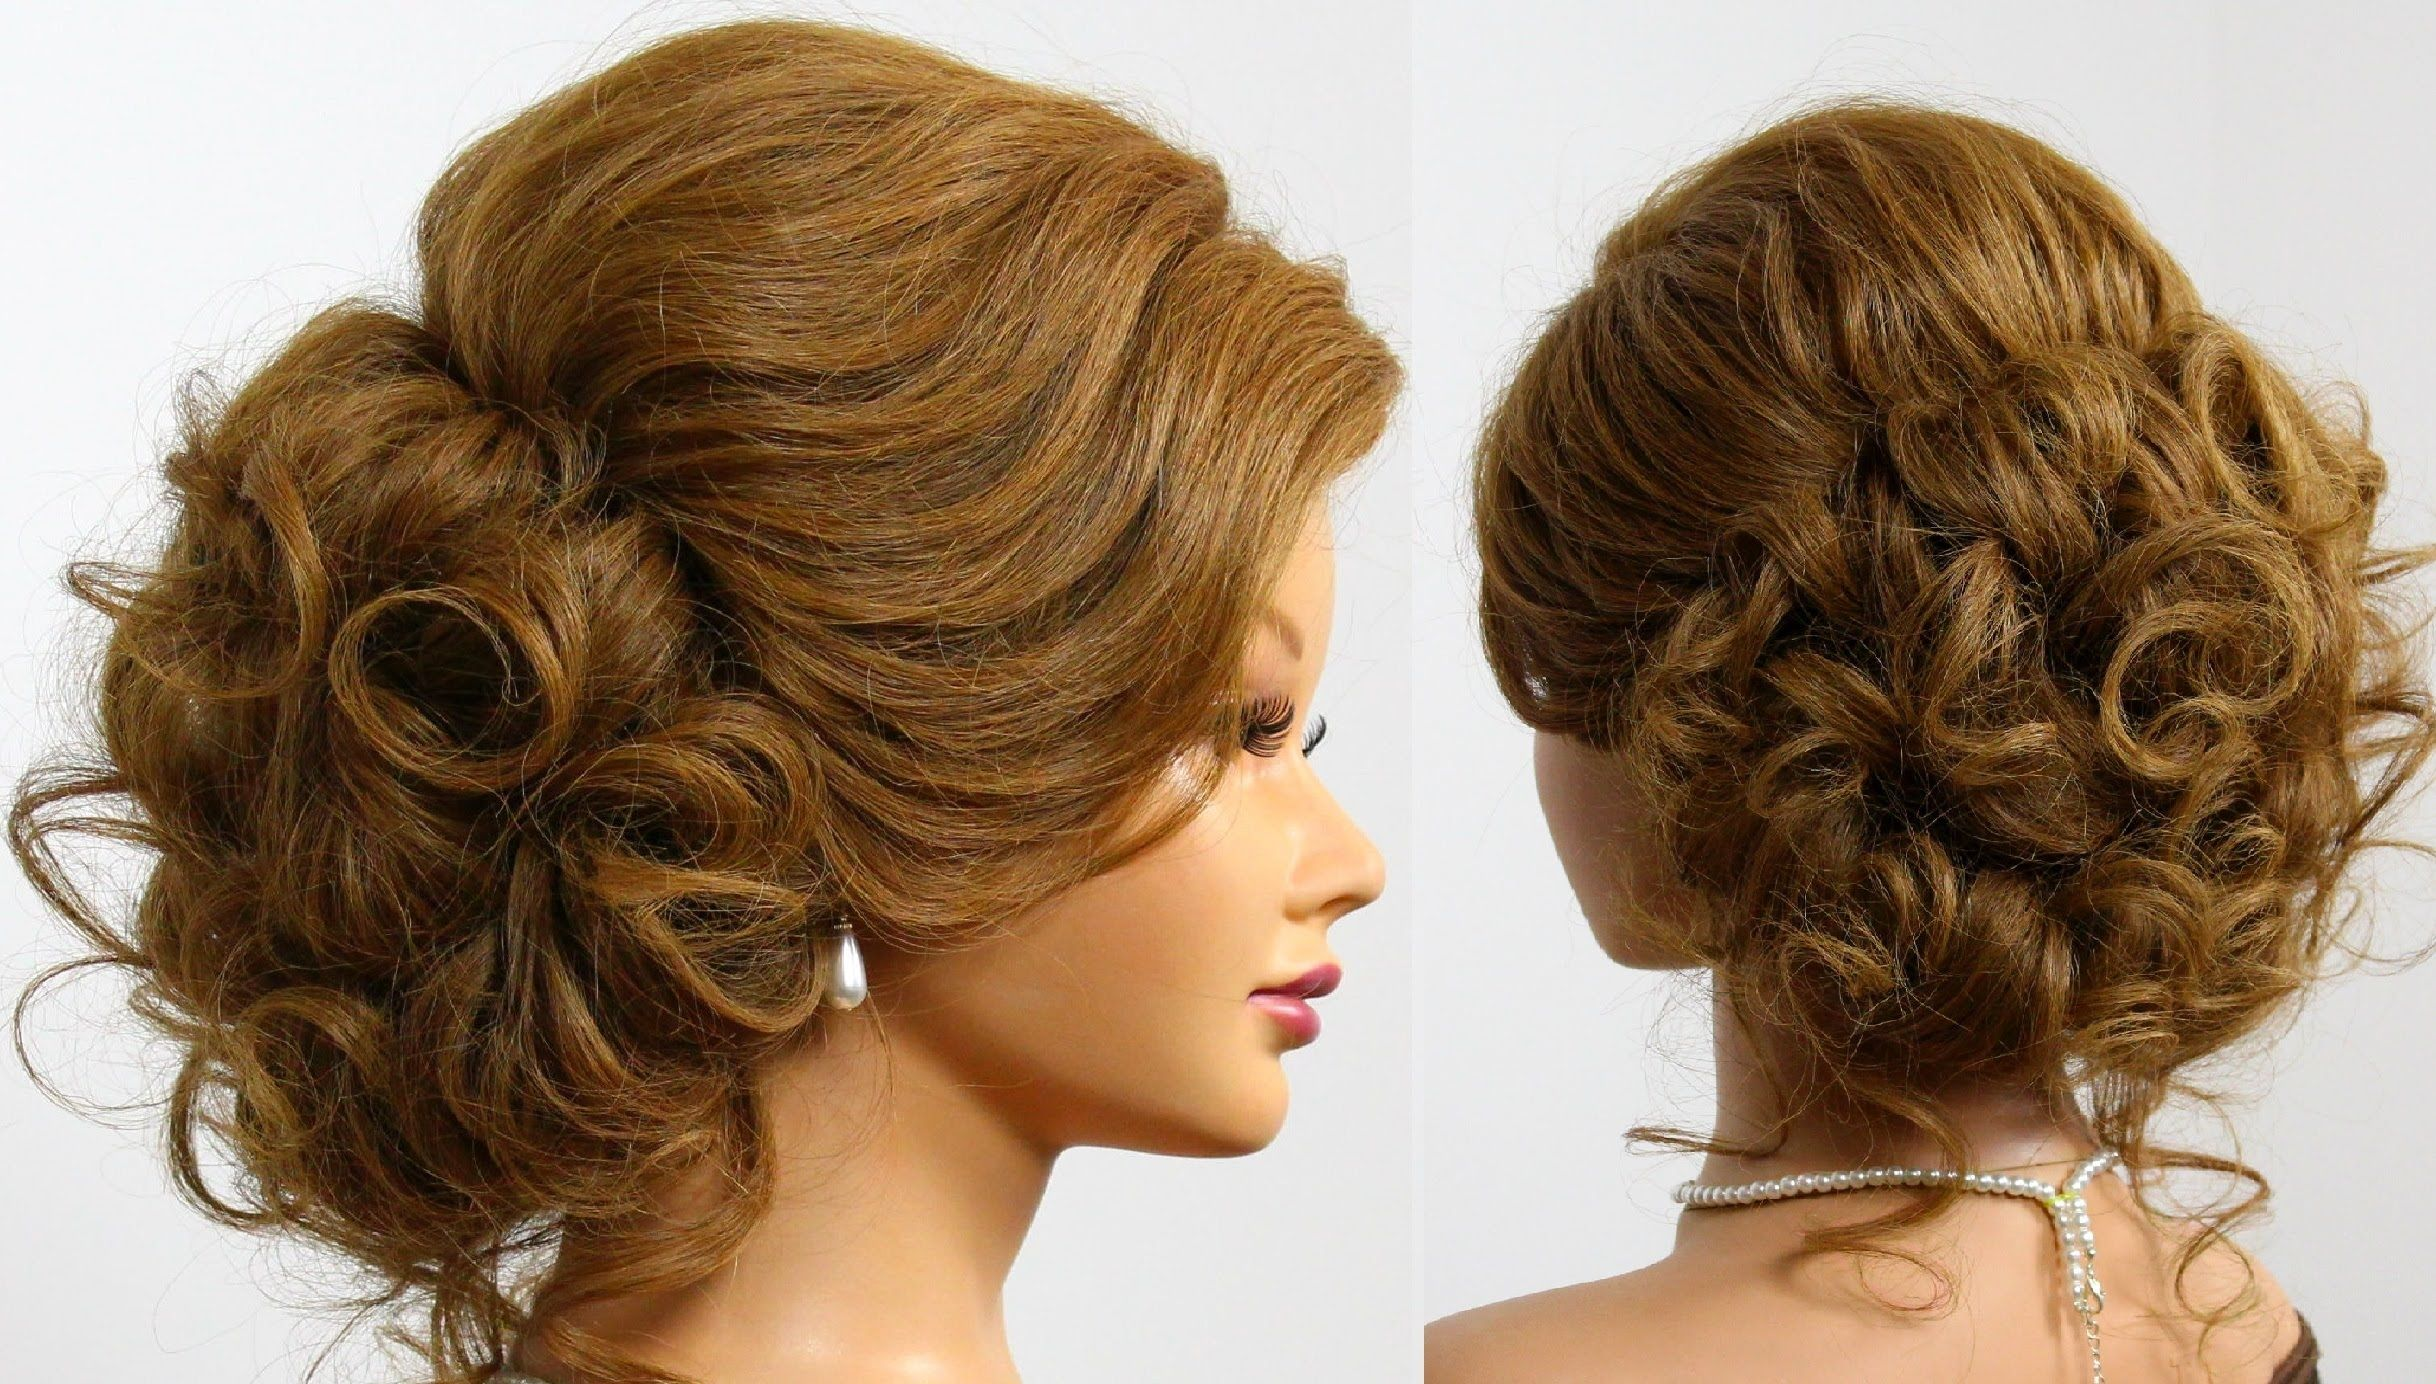 Hairstyle for Long Curly Hair